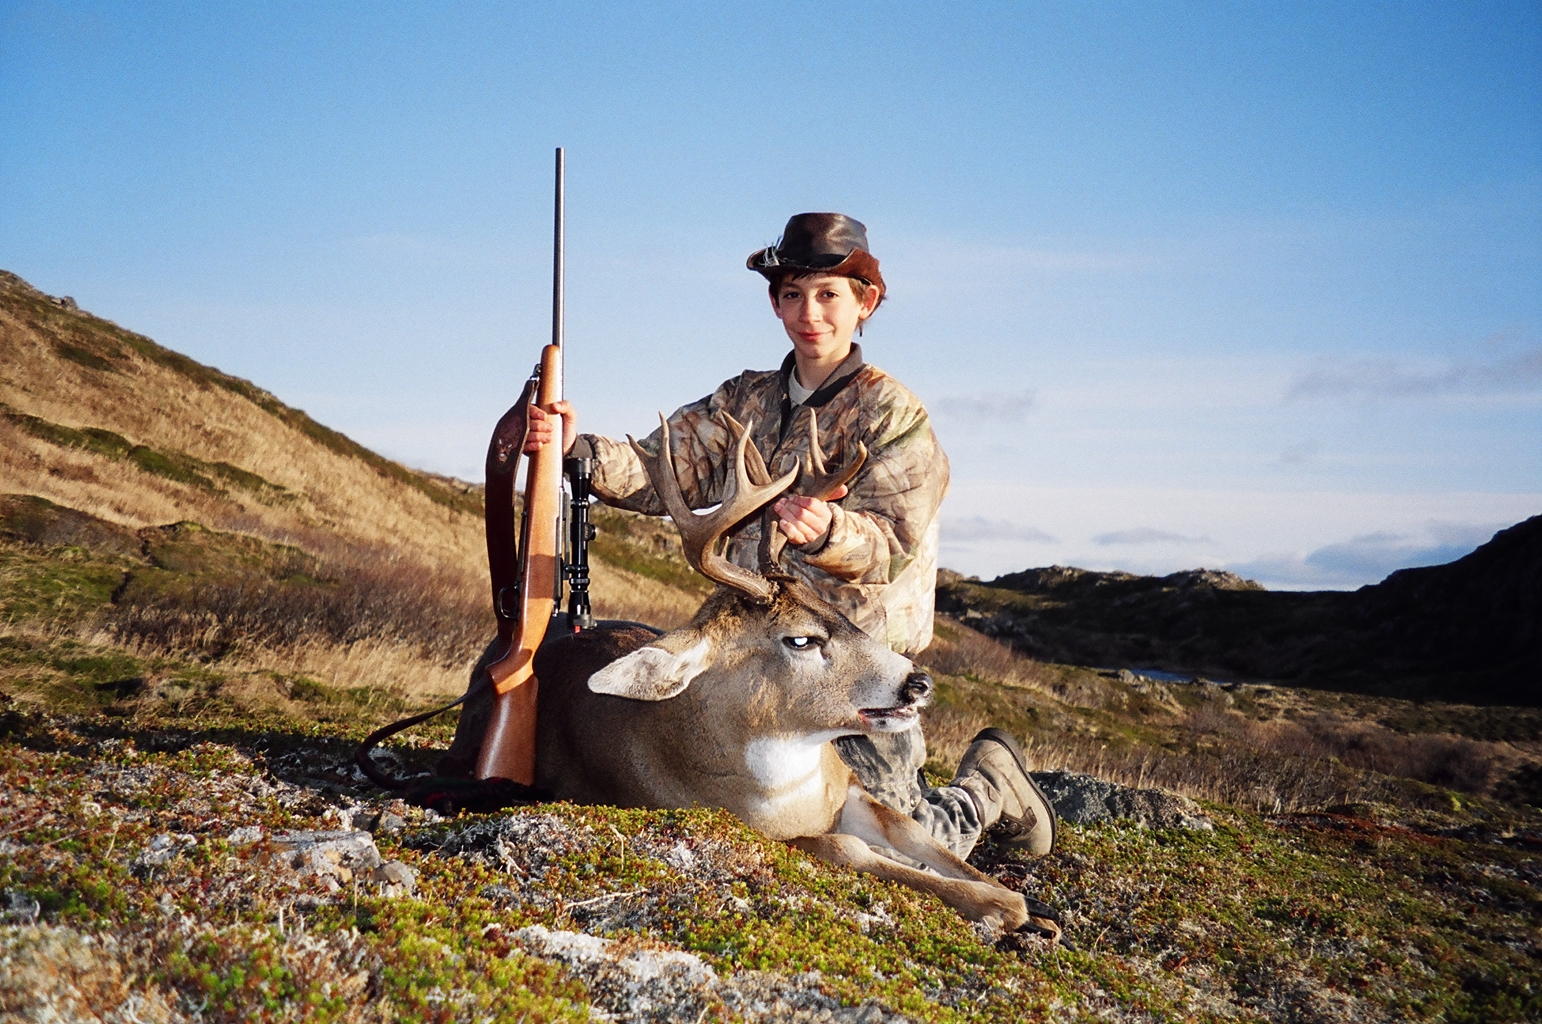 Jared, age 12, with his super 96 point B&C deer.